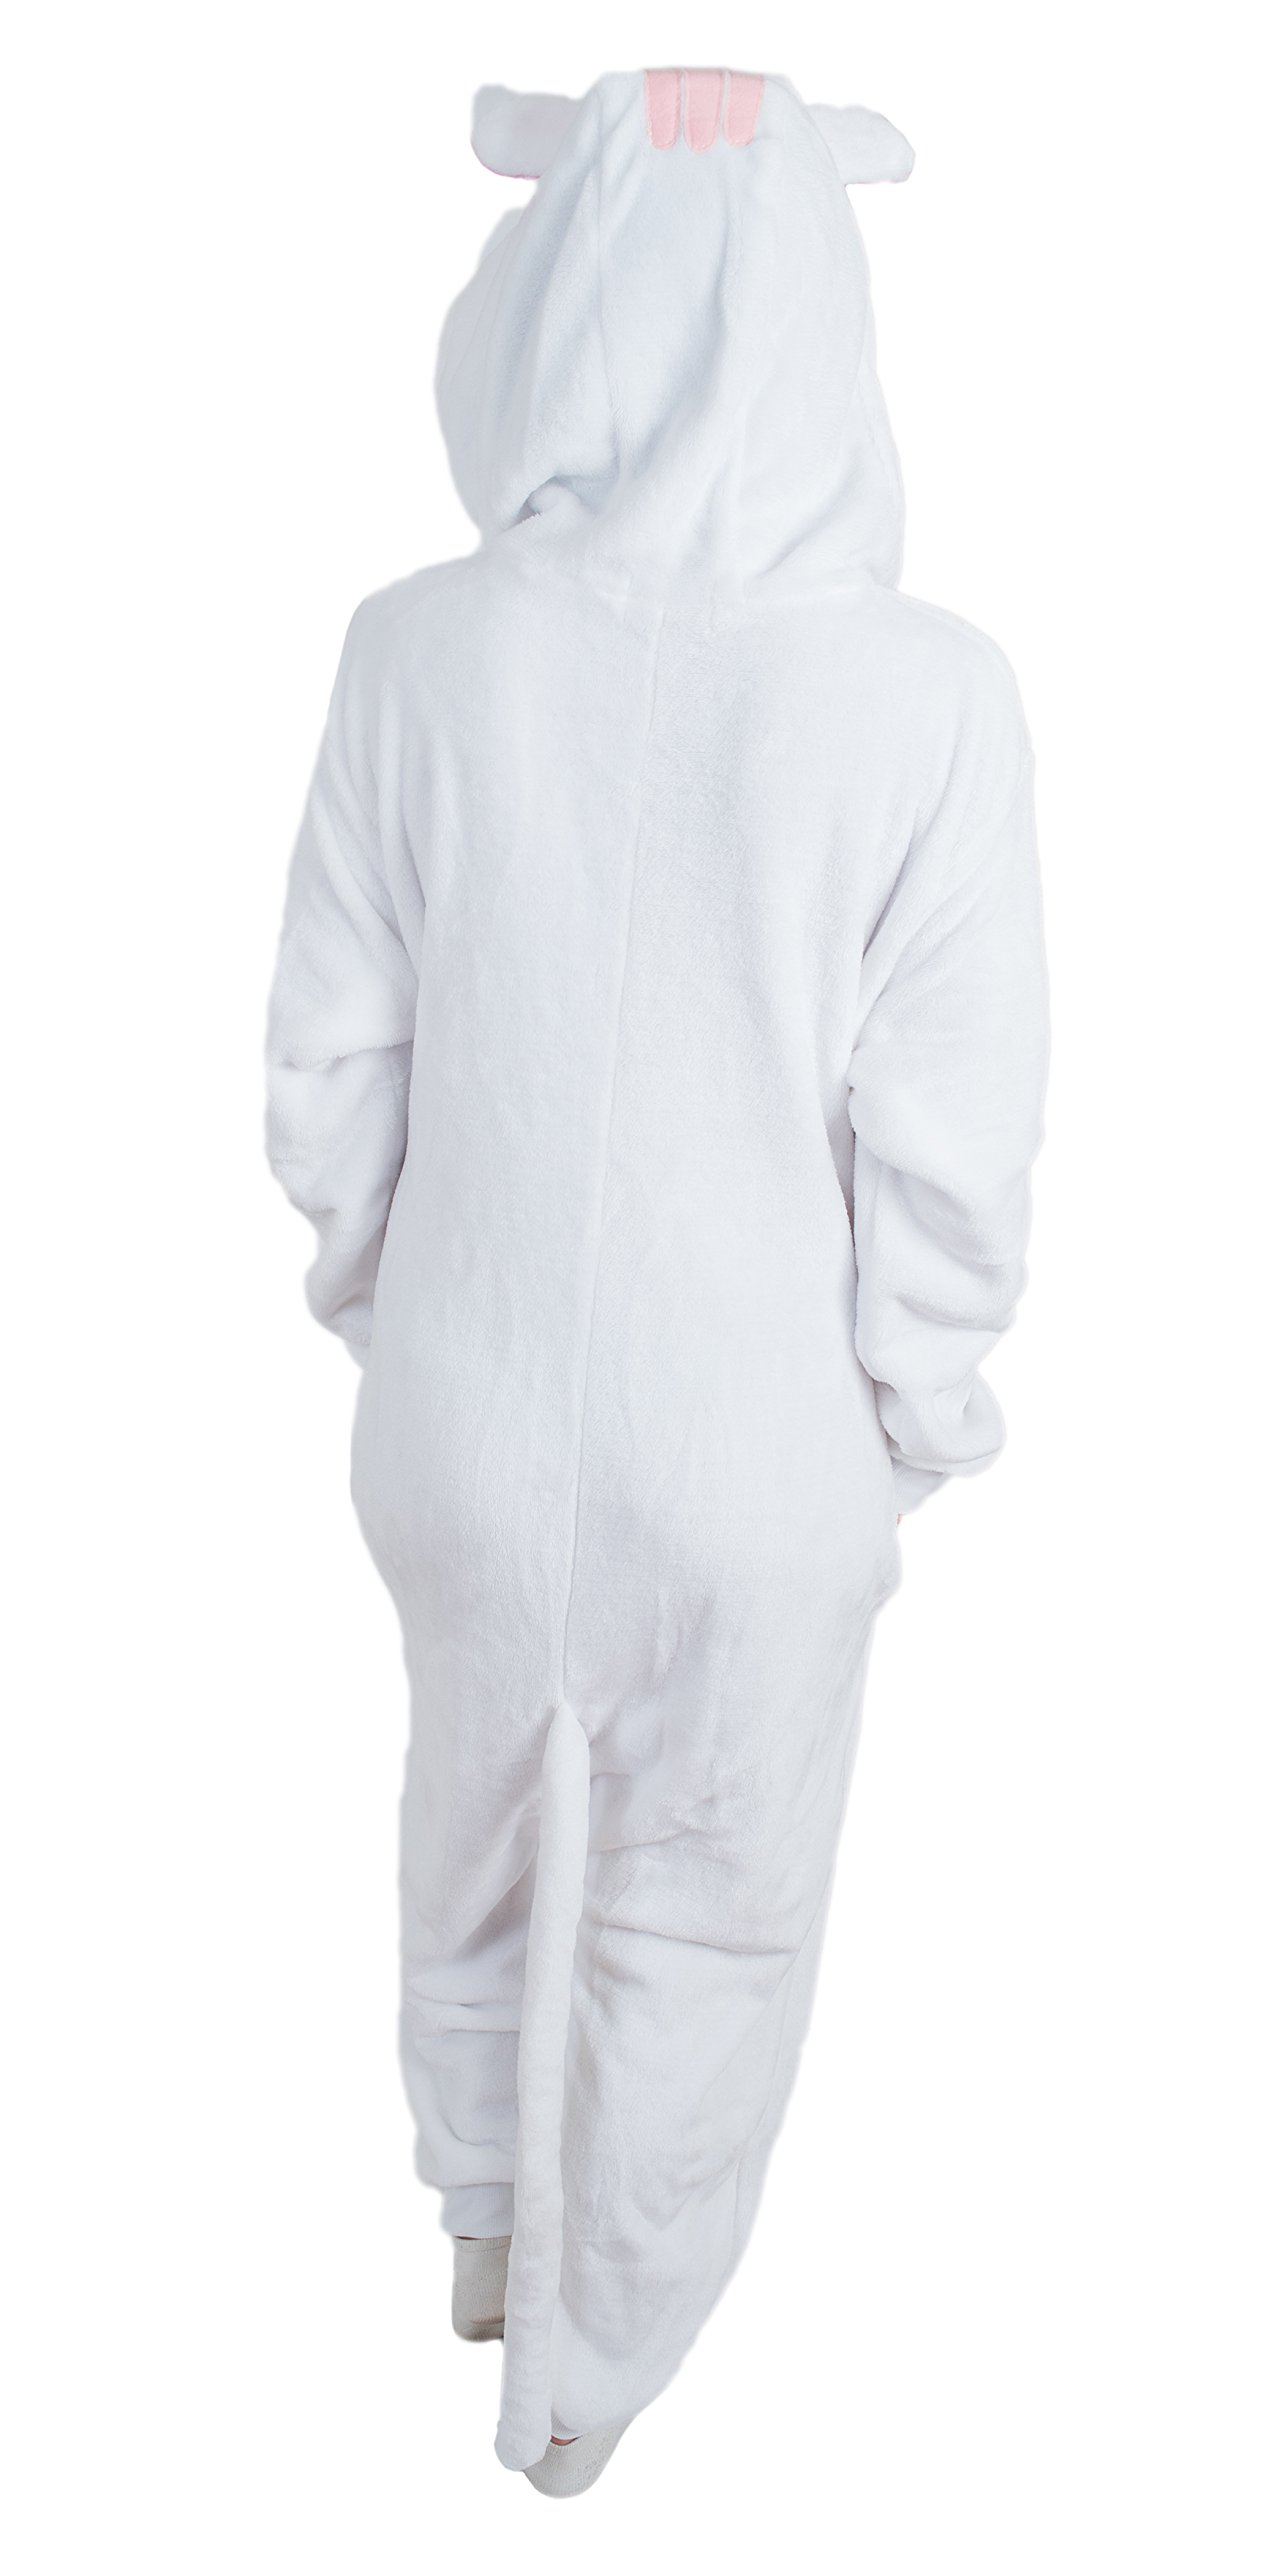 Bad Bear Brand Adult Onesie Cat Animal Pajamas Comfortable Costume With Zipper and Pockets (Small) by Bad Bear Brand (Image #4)